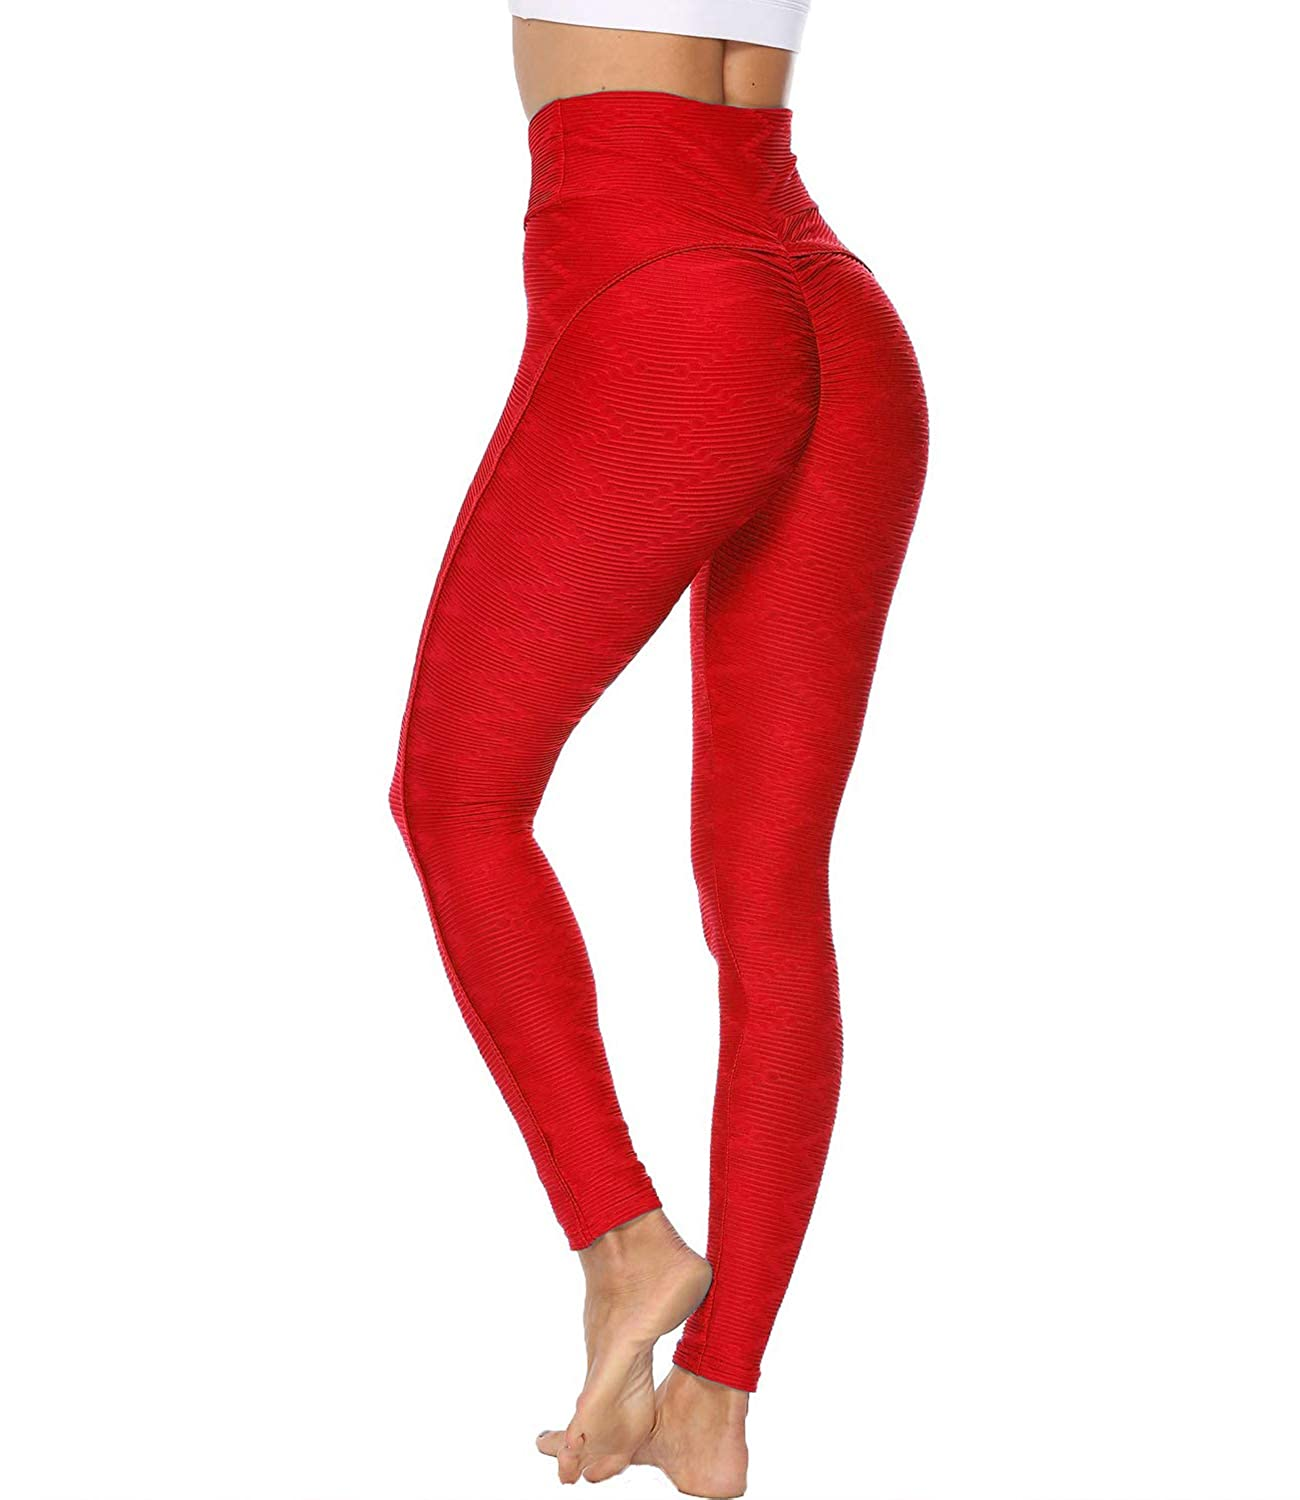 STARBILD Womens High Waist Ruched Butt Lifting Yoga Pants Tummy Control Stretchy Leggings Booty Textured Workout Tights